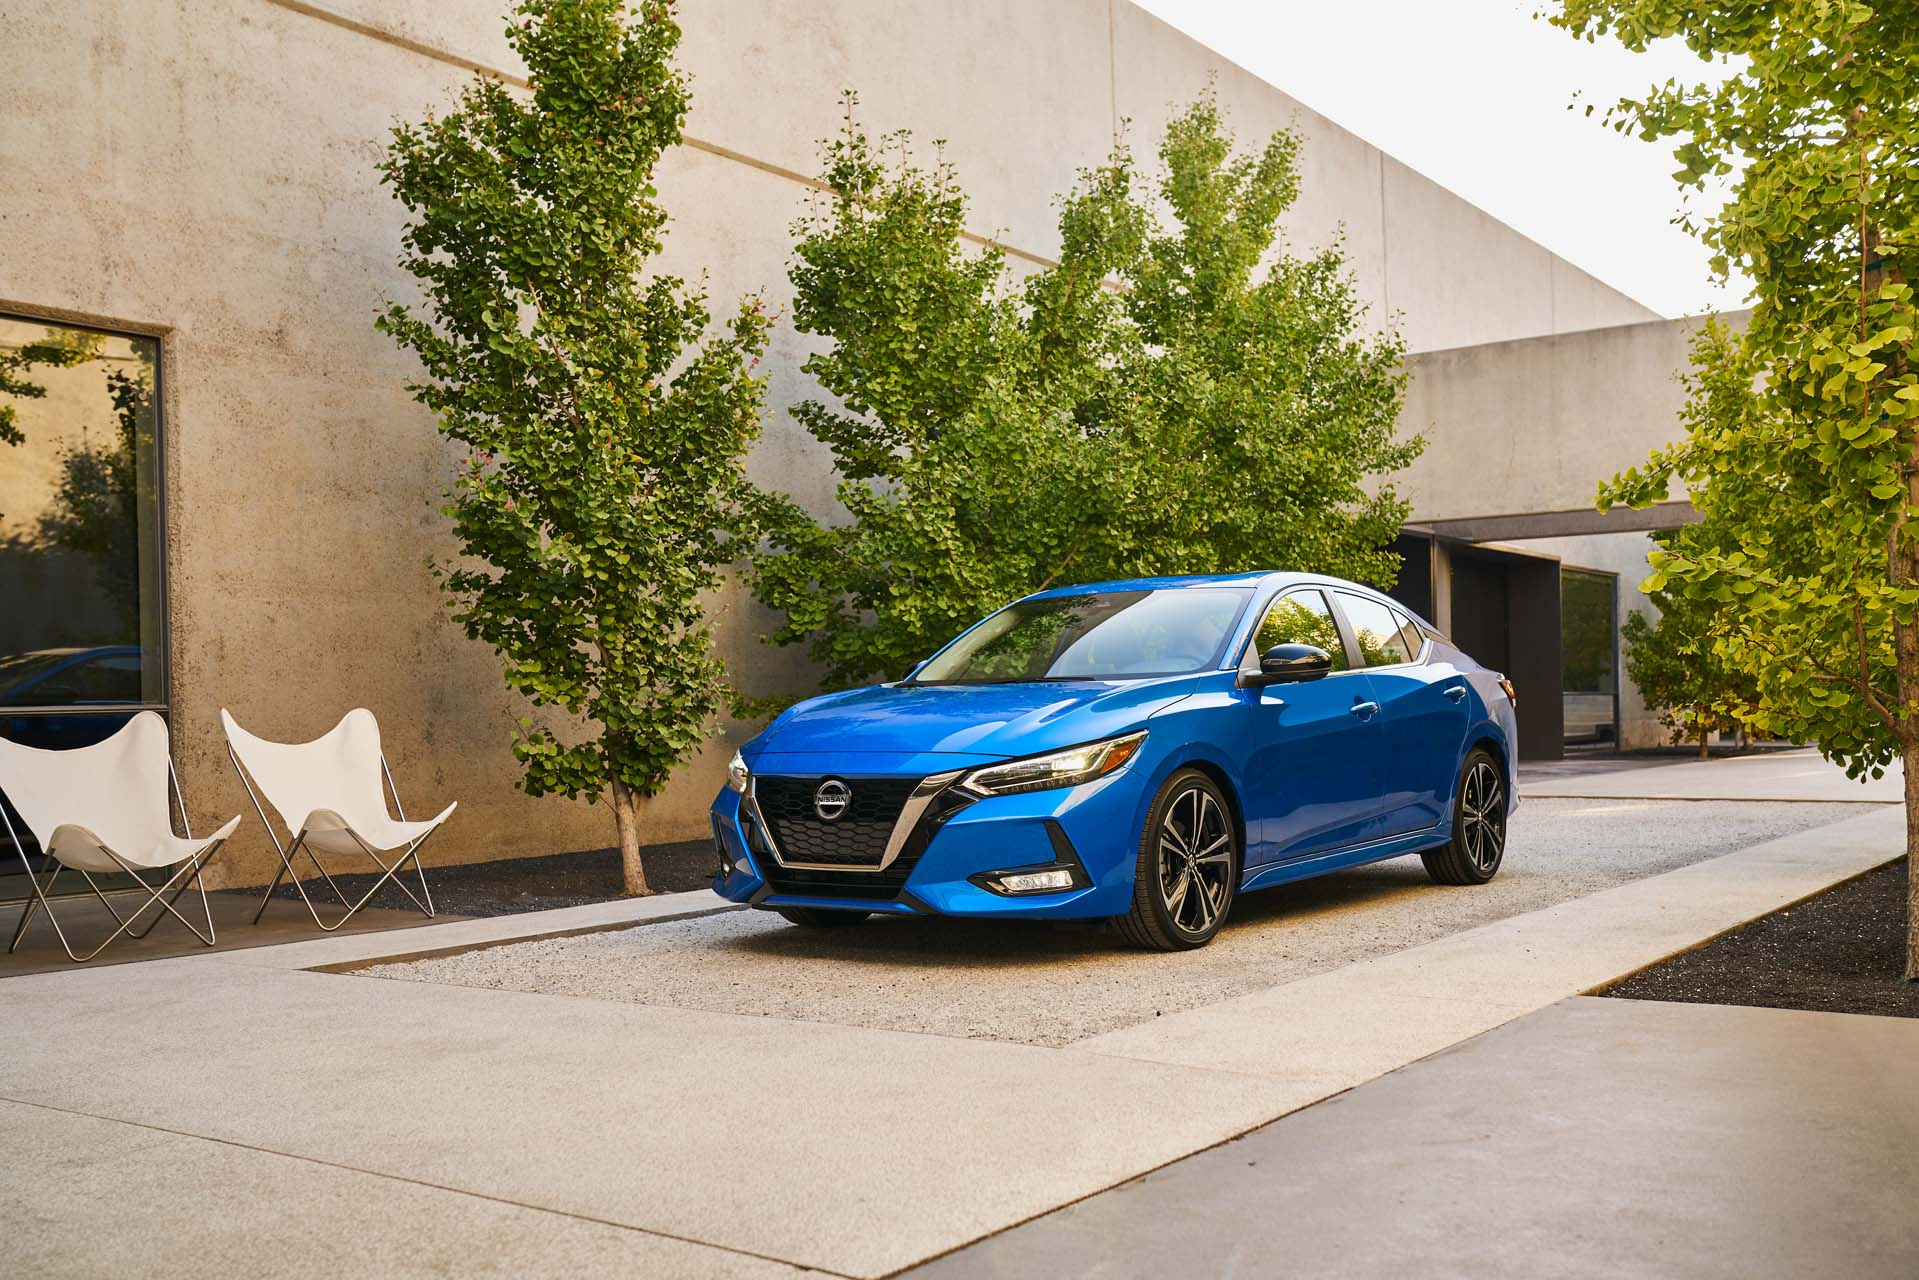 2020 Nissan Sentra Review Ratings Specs Prices And Photos The Car Connection Nissan sentra for sale is available in various trims and variants, belonging to the different generations. 2020 nissan sentra review ratings specs prices and photos the car connection